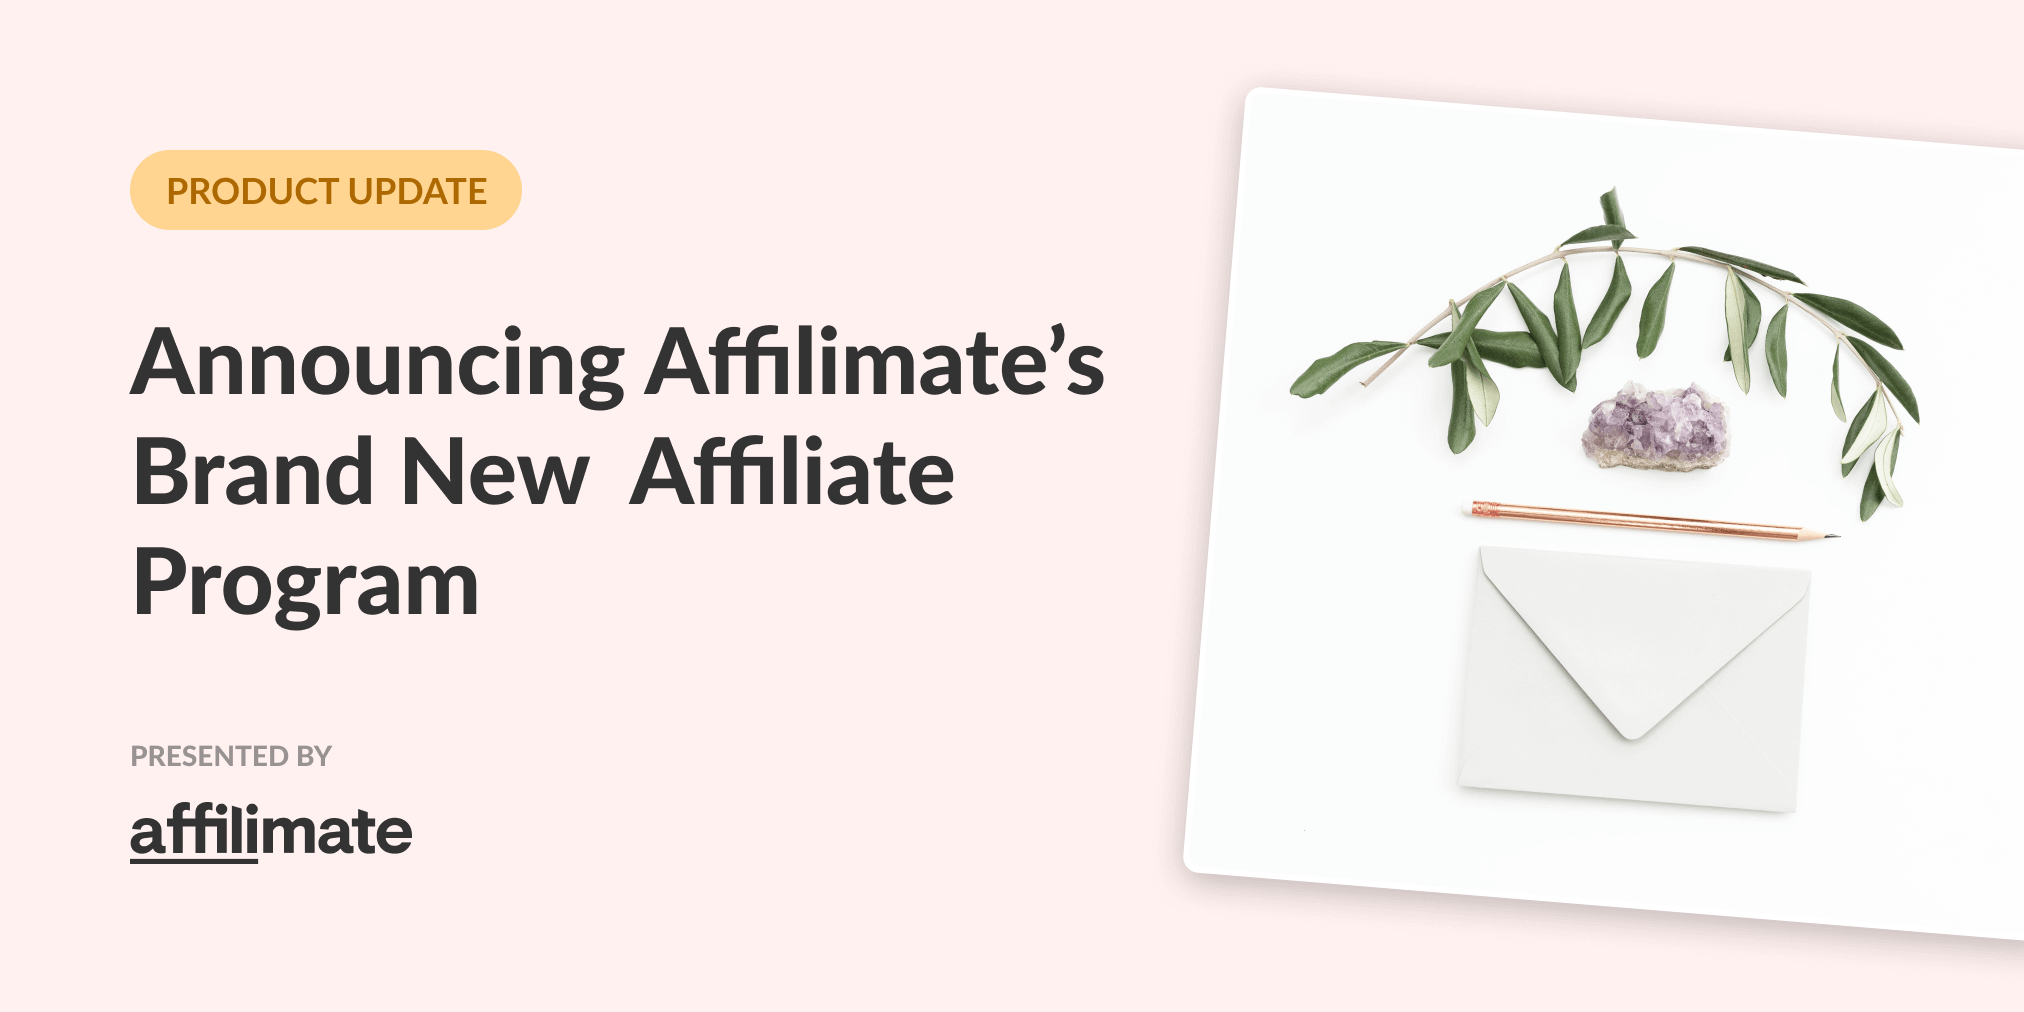 Announcing Affilimate's brand new affiliate program